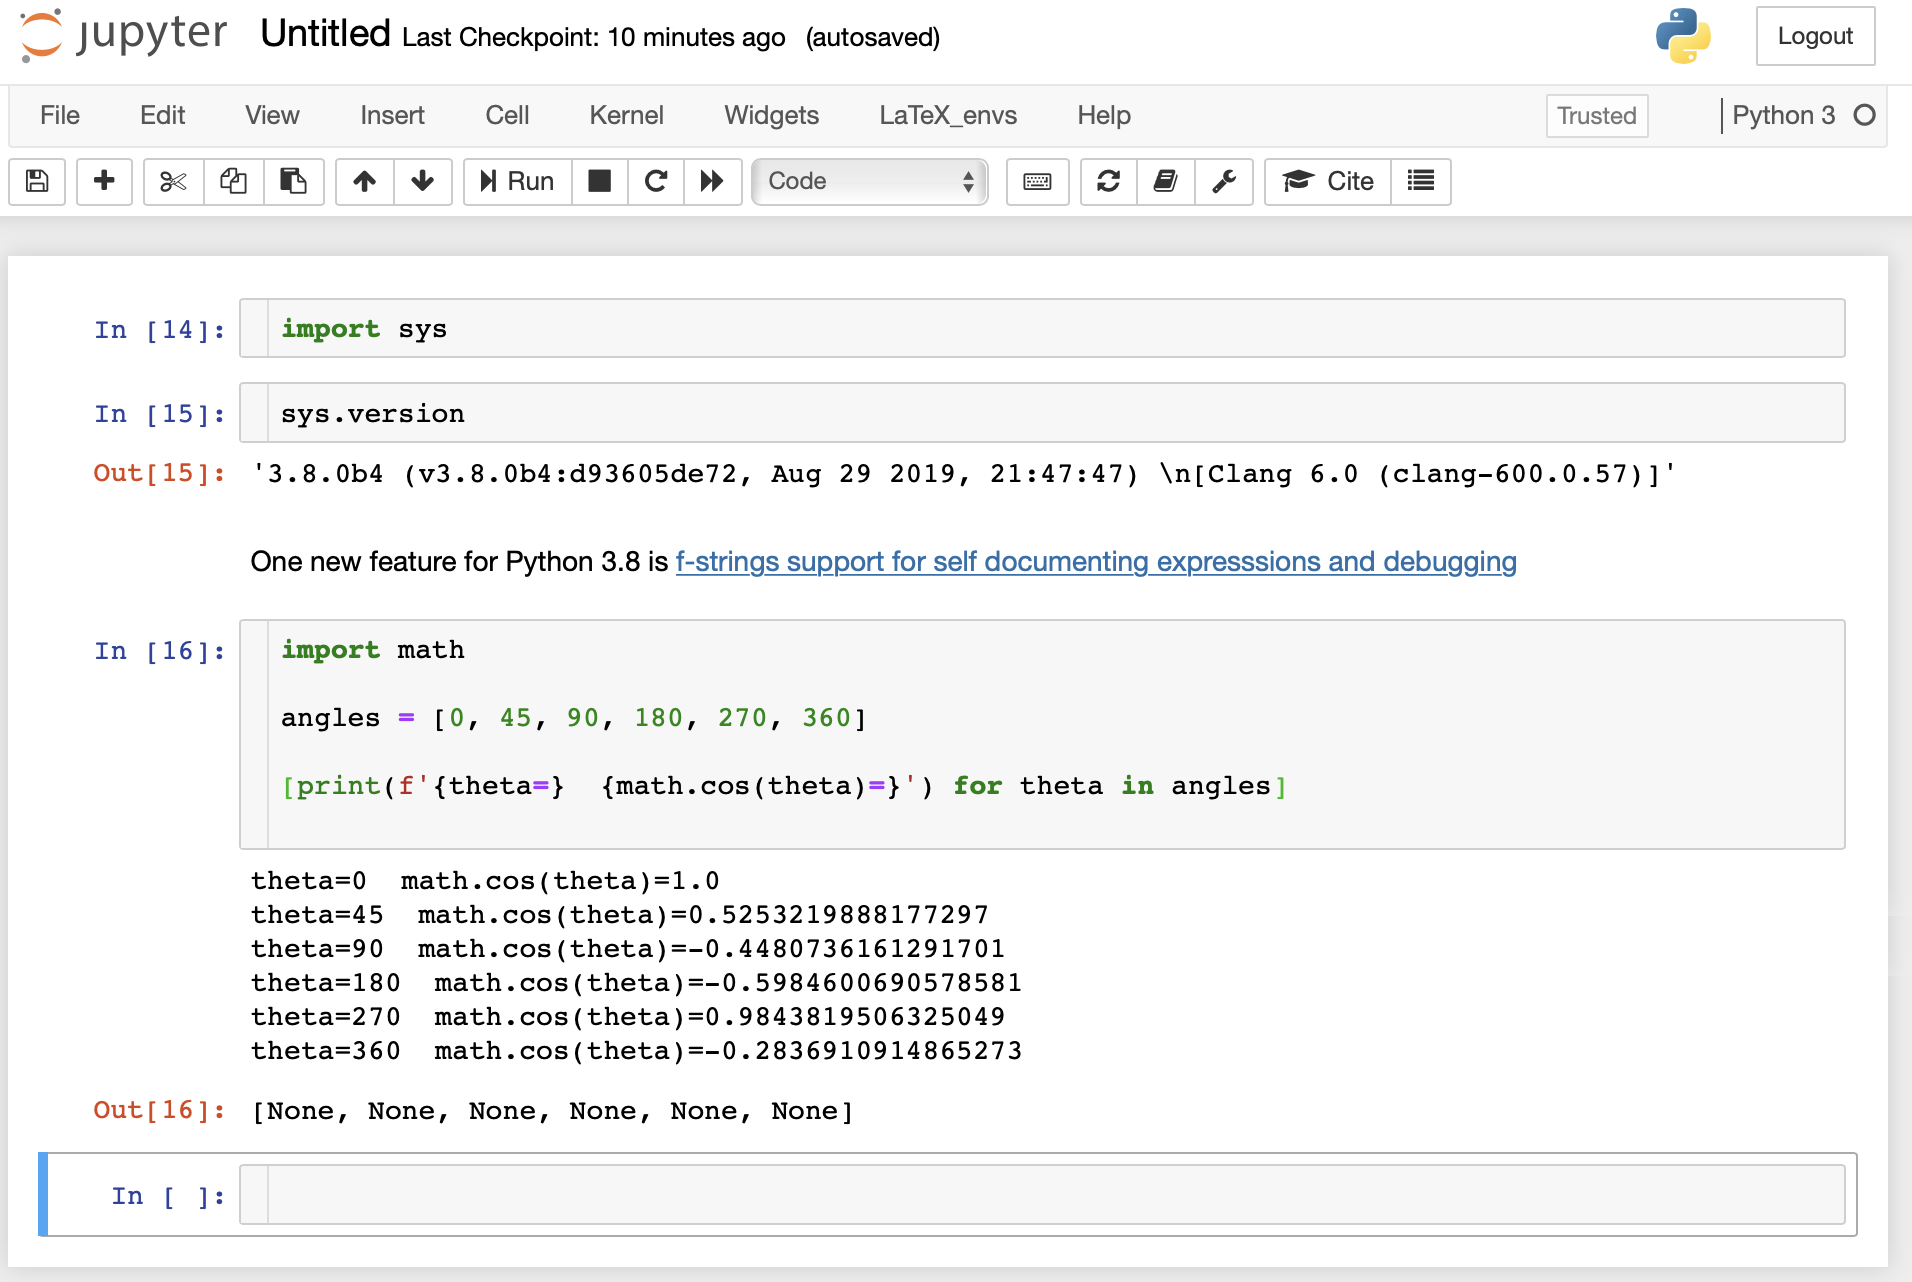 image from Trying the Python 3.8 beta with Jupyter Notebook